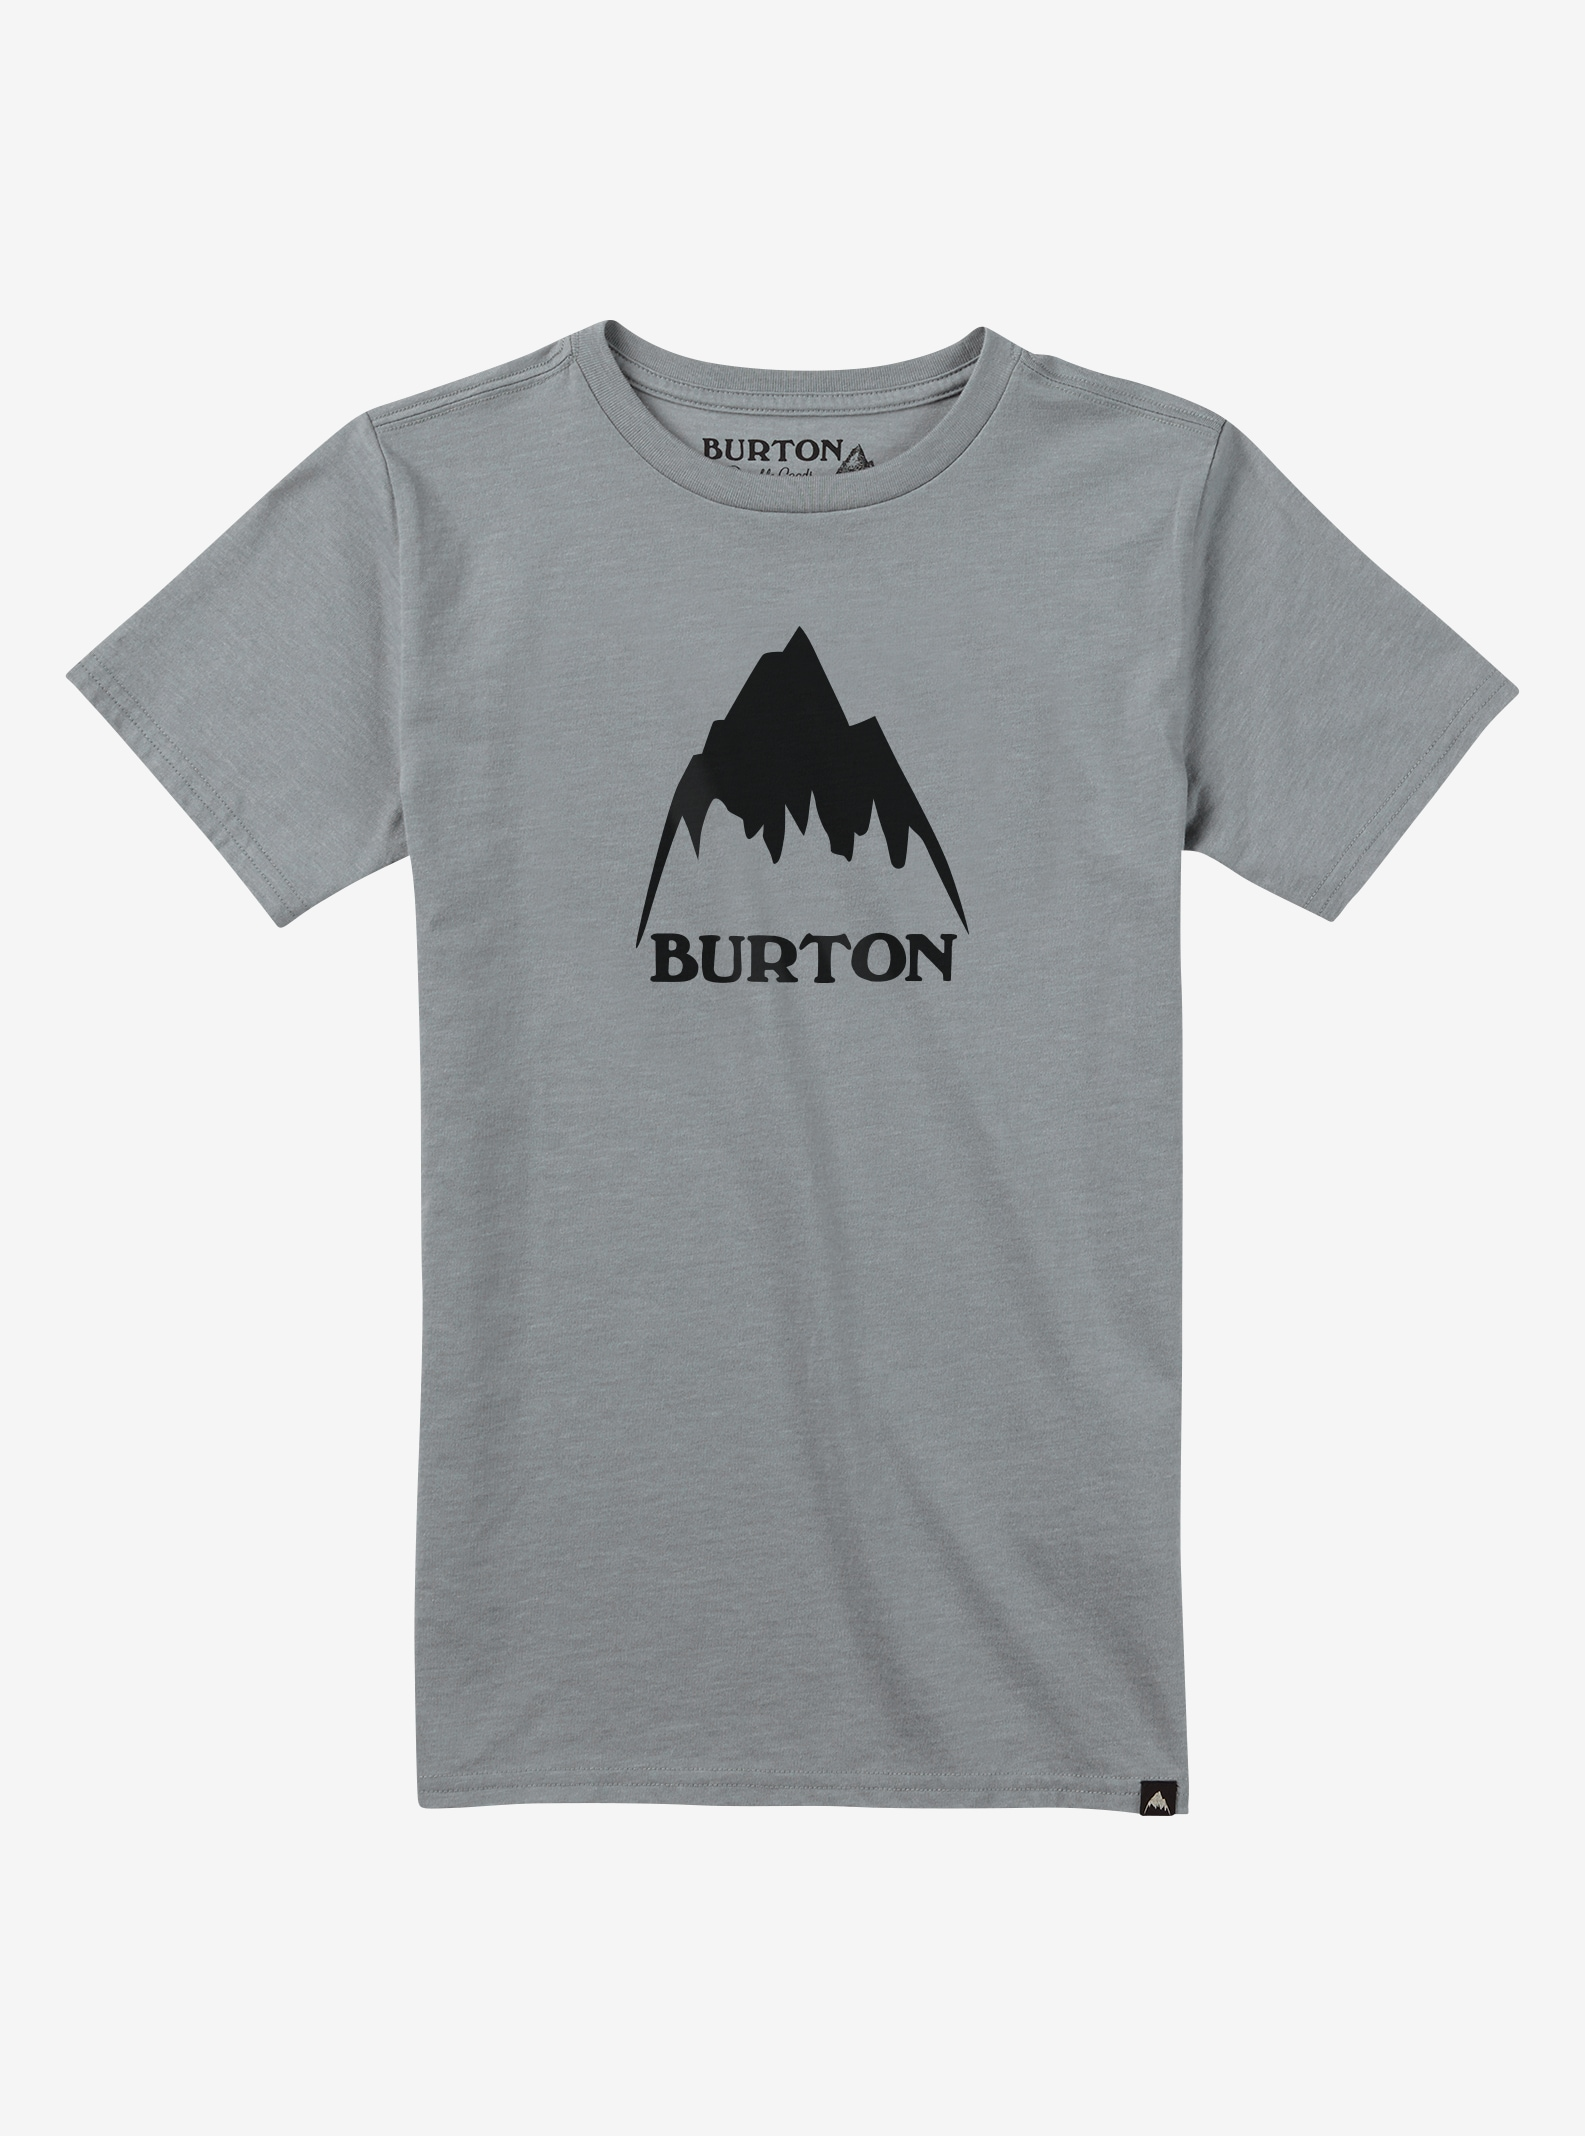 Boys' Burton Classic Mountain High Short Sleeve T Shirt shown in Gray Heather